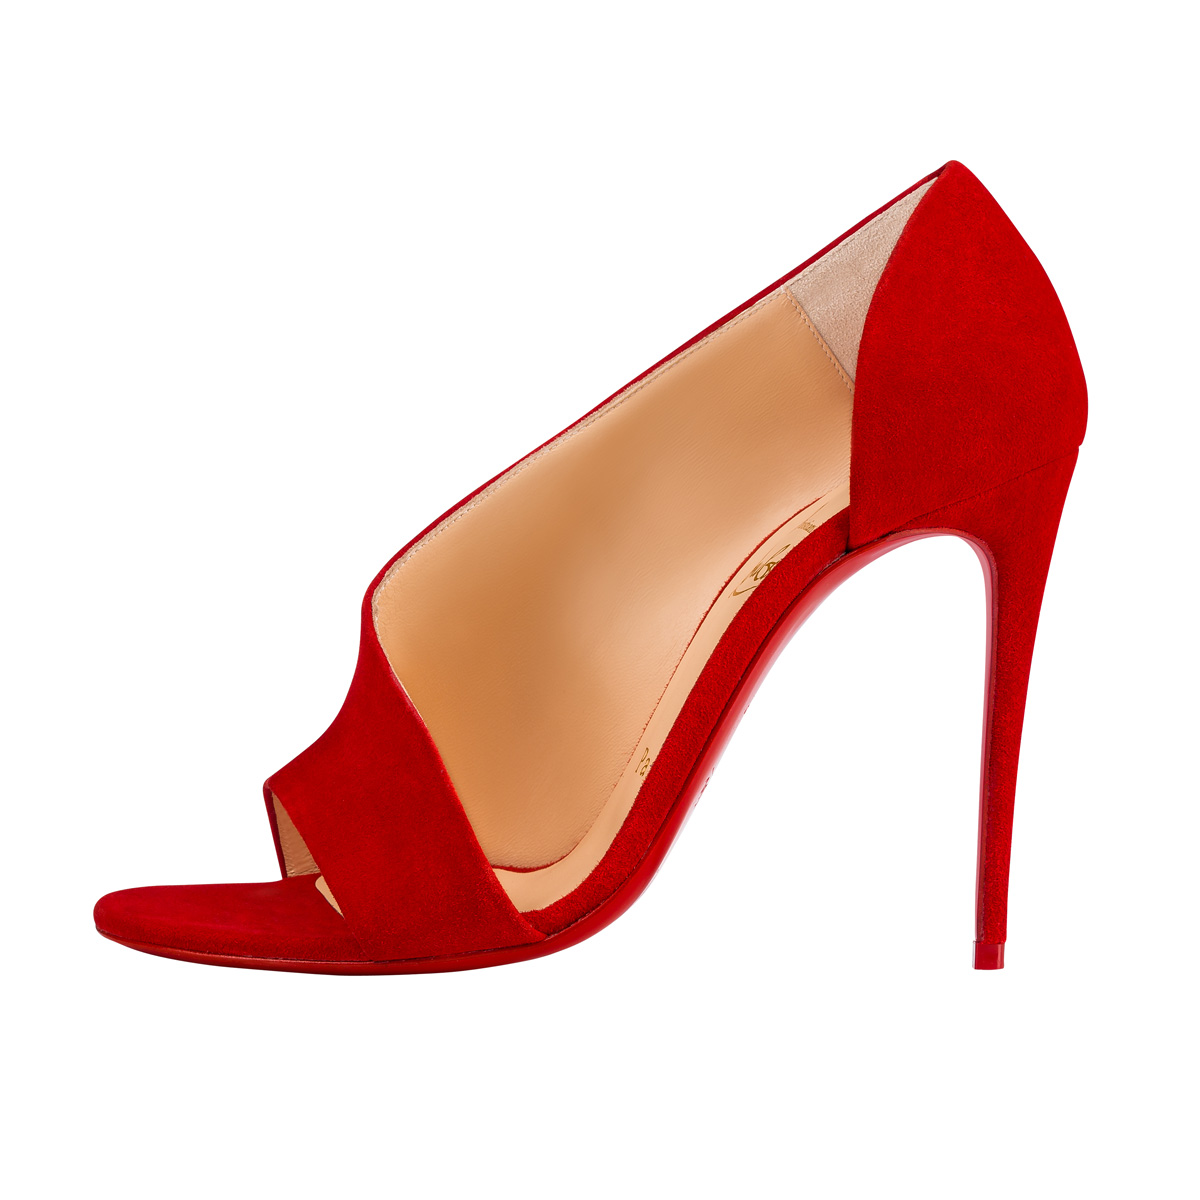 the latest 1bec2 f95c0 Street Style Stars on Christian Louboutin's Shoes ...